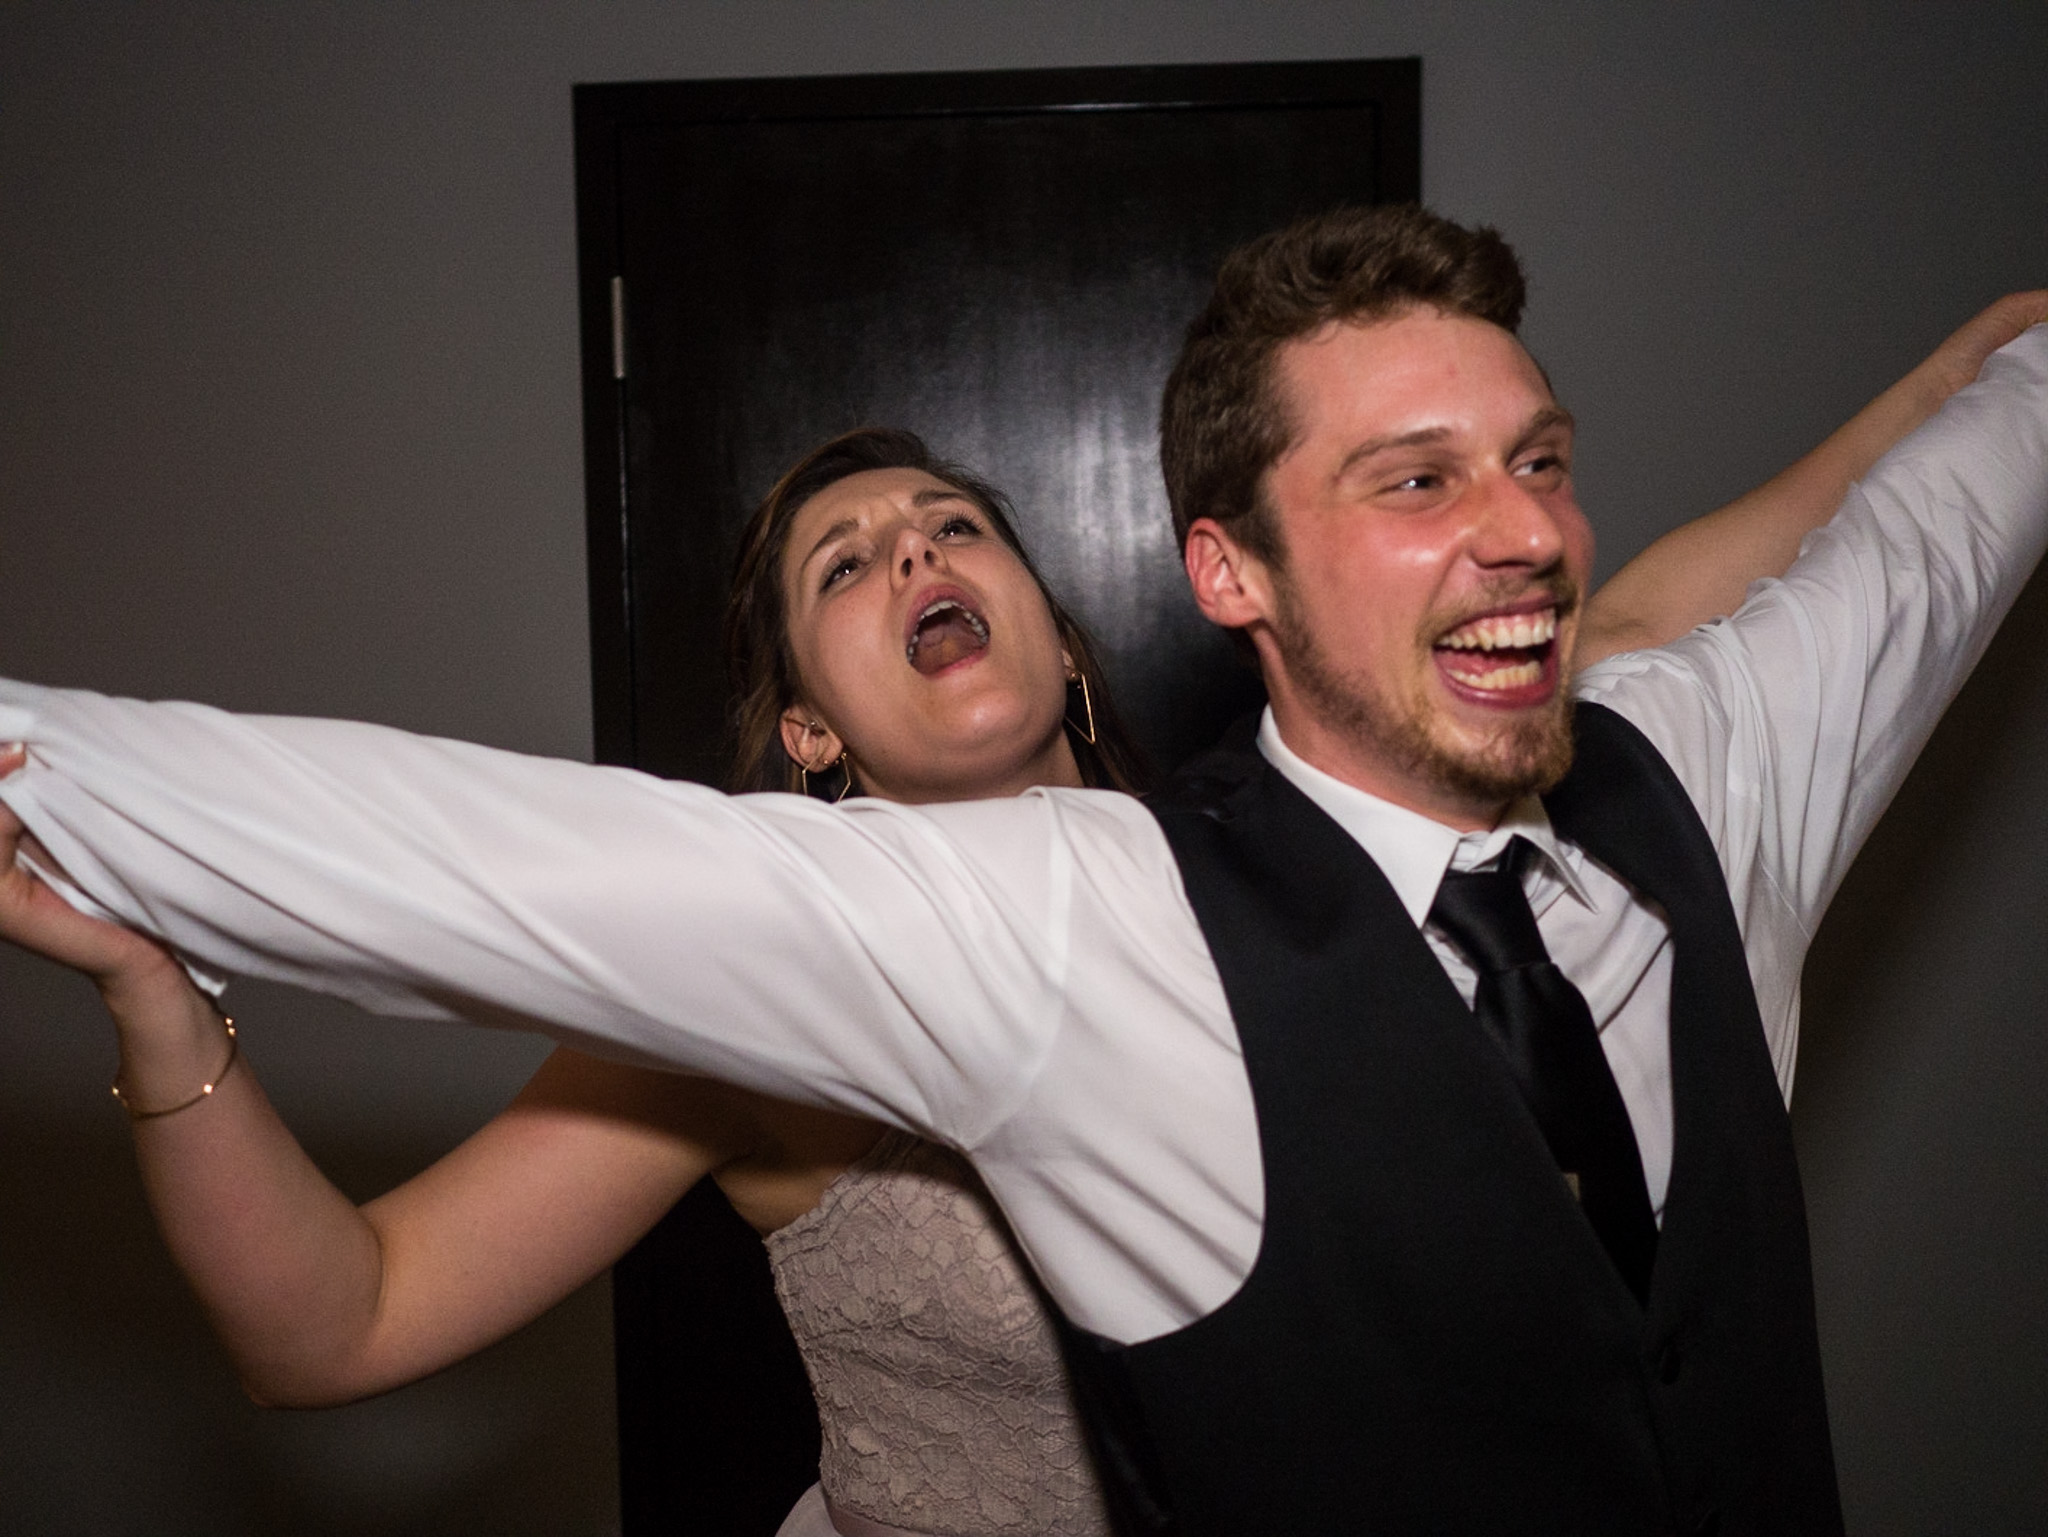 214 Martin Street, Wedding Photography, Raleigh, NC, Bride and Groom, Groom, Reception, Dancing, Fun